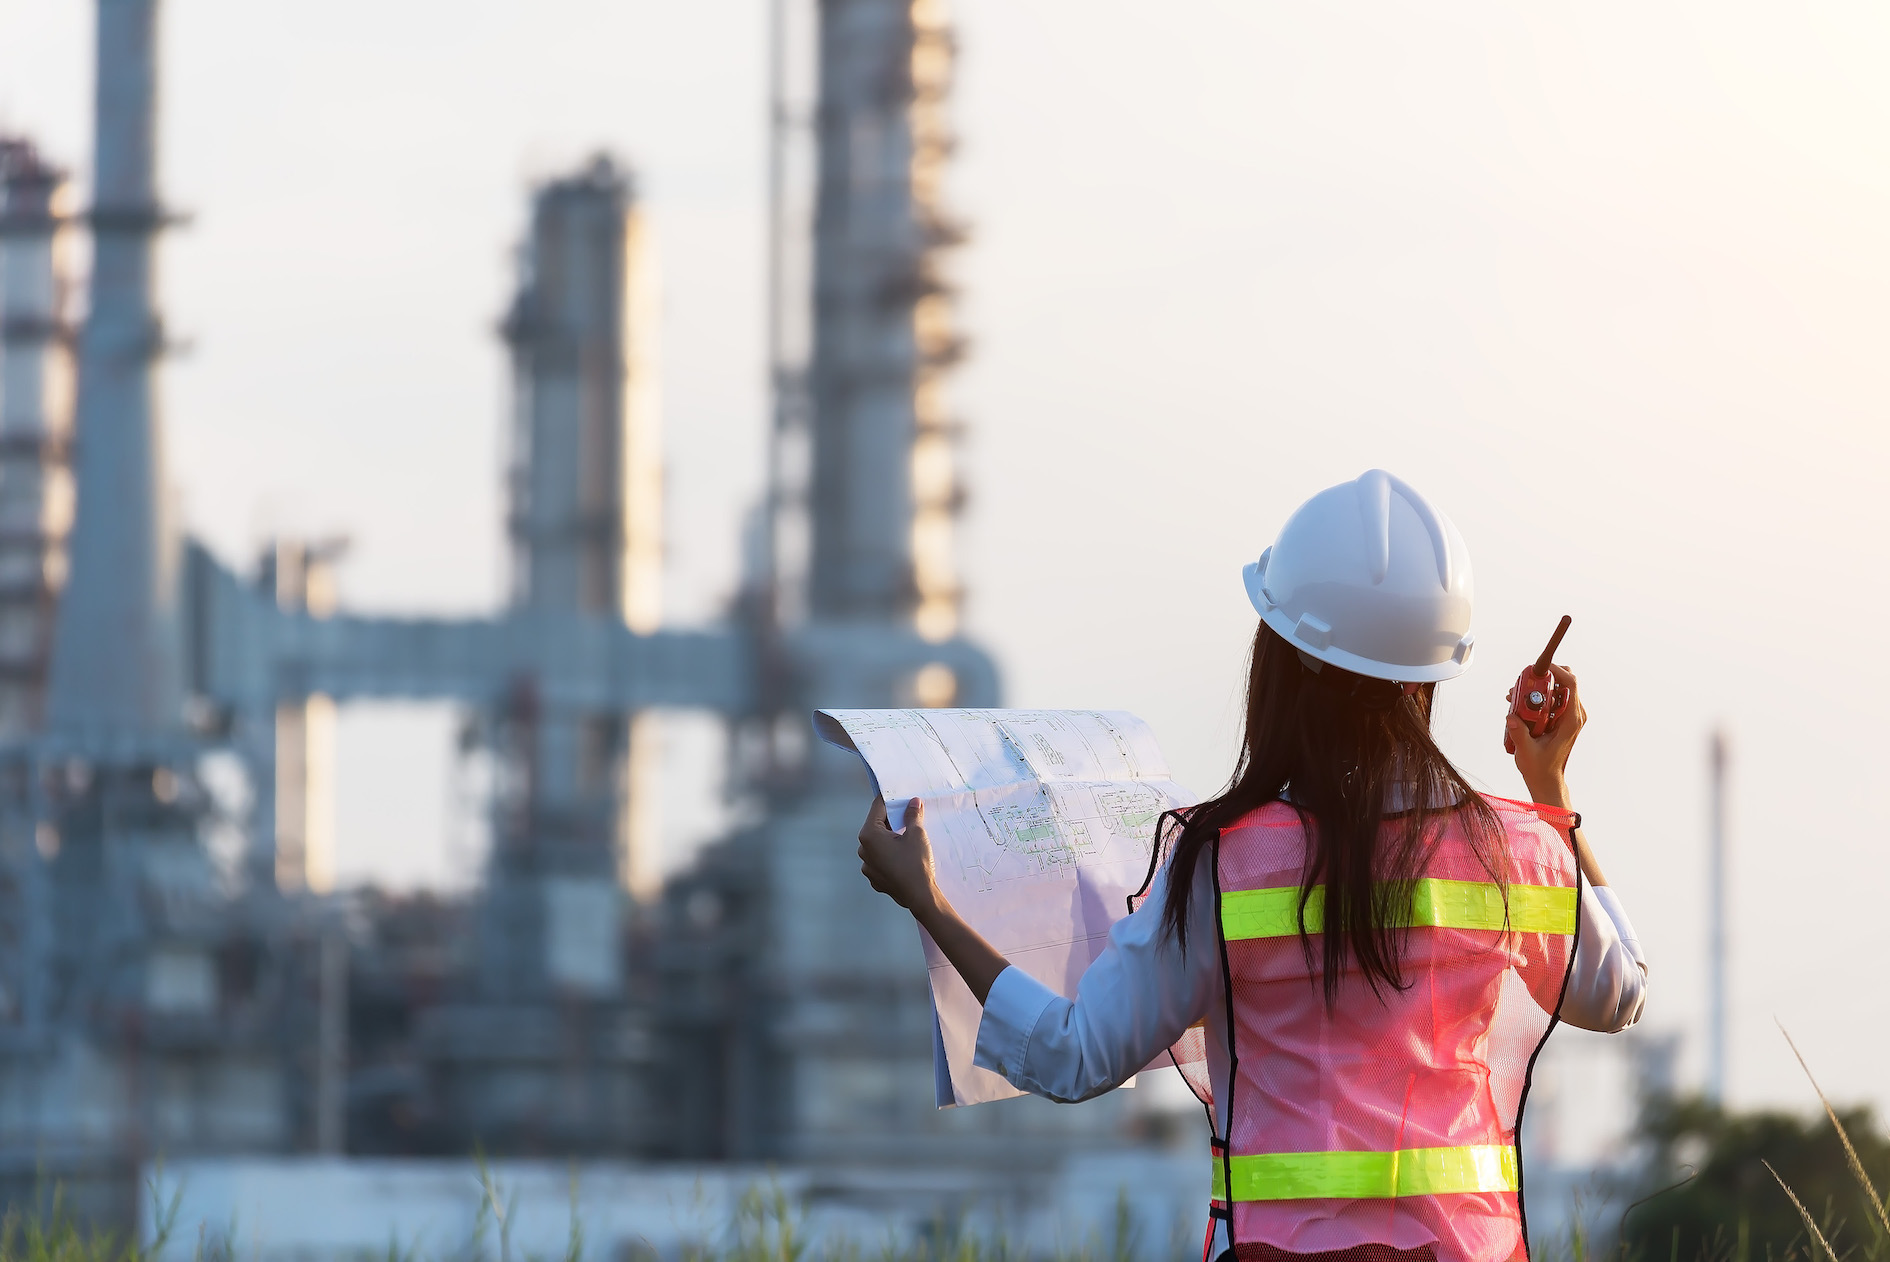 Women engineers urged to maintain integrity